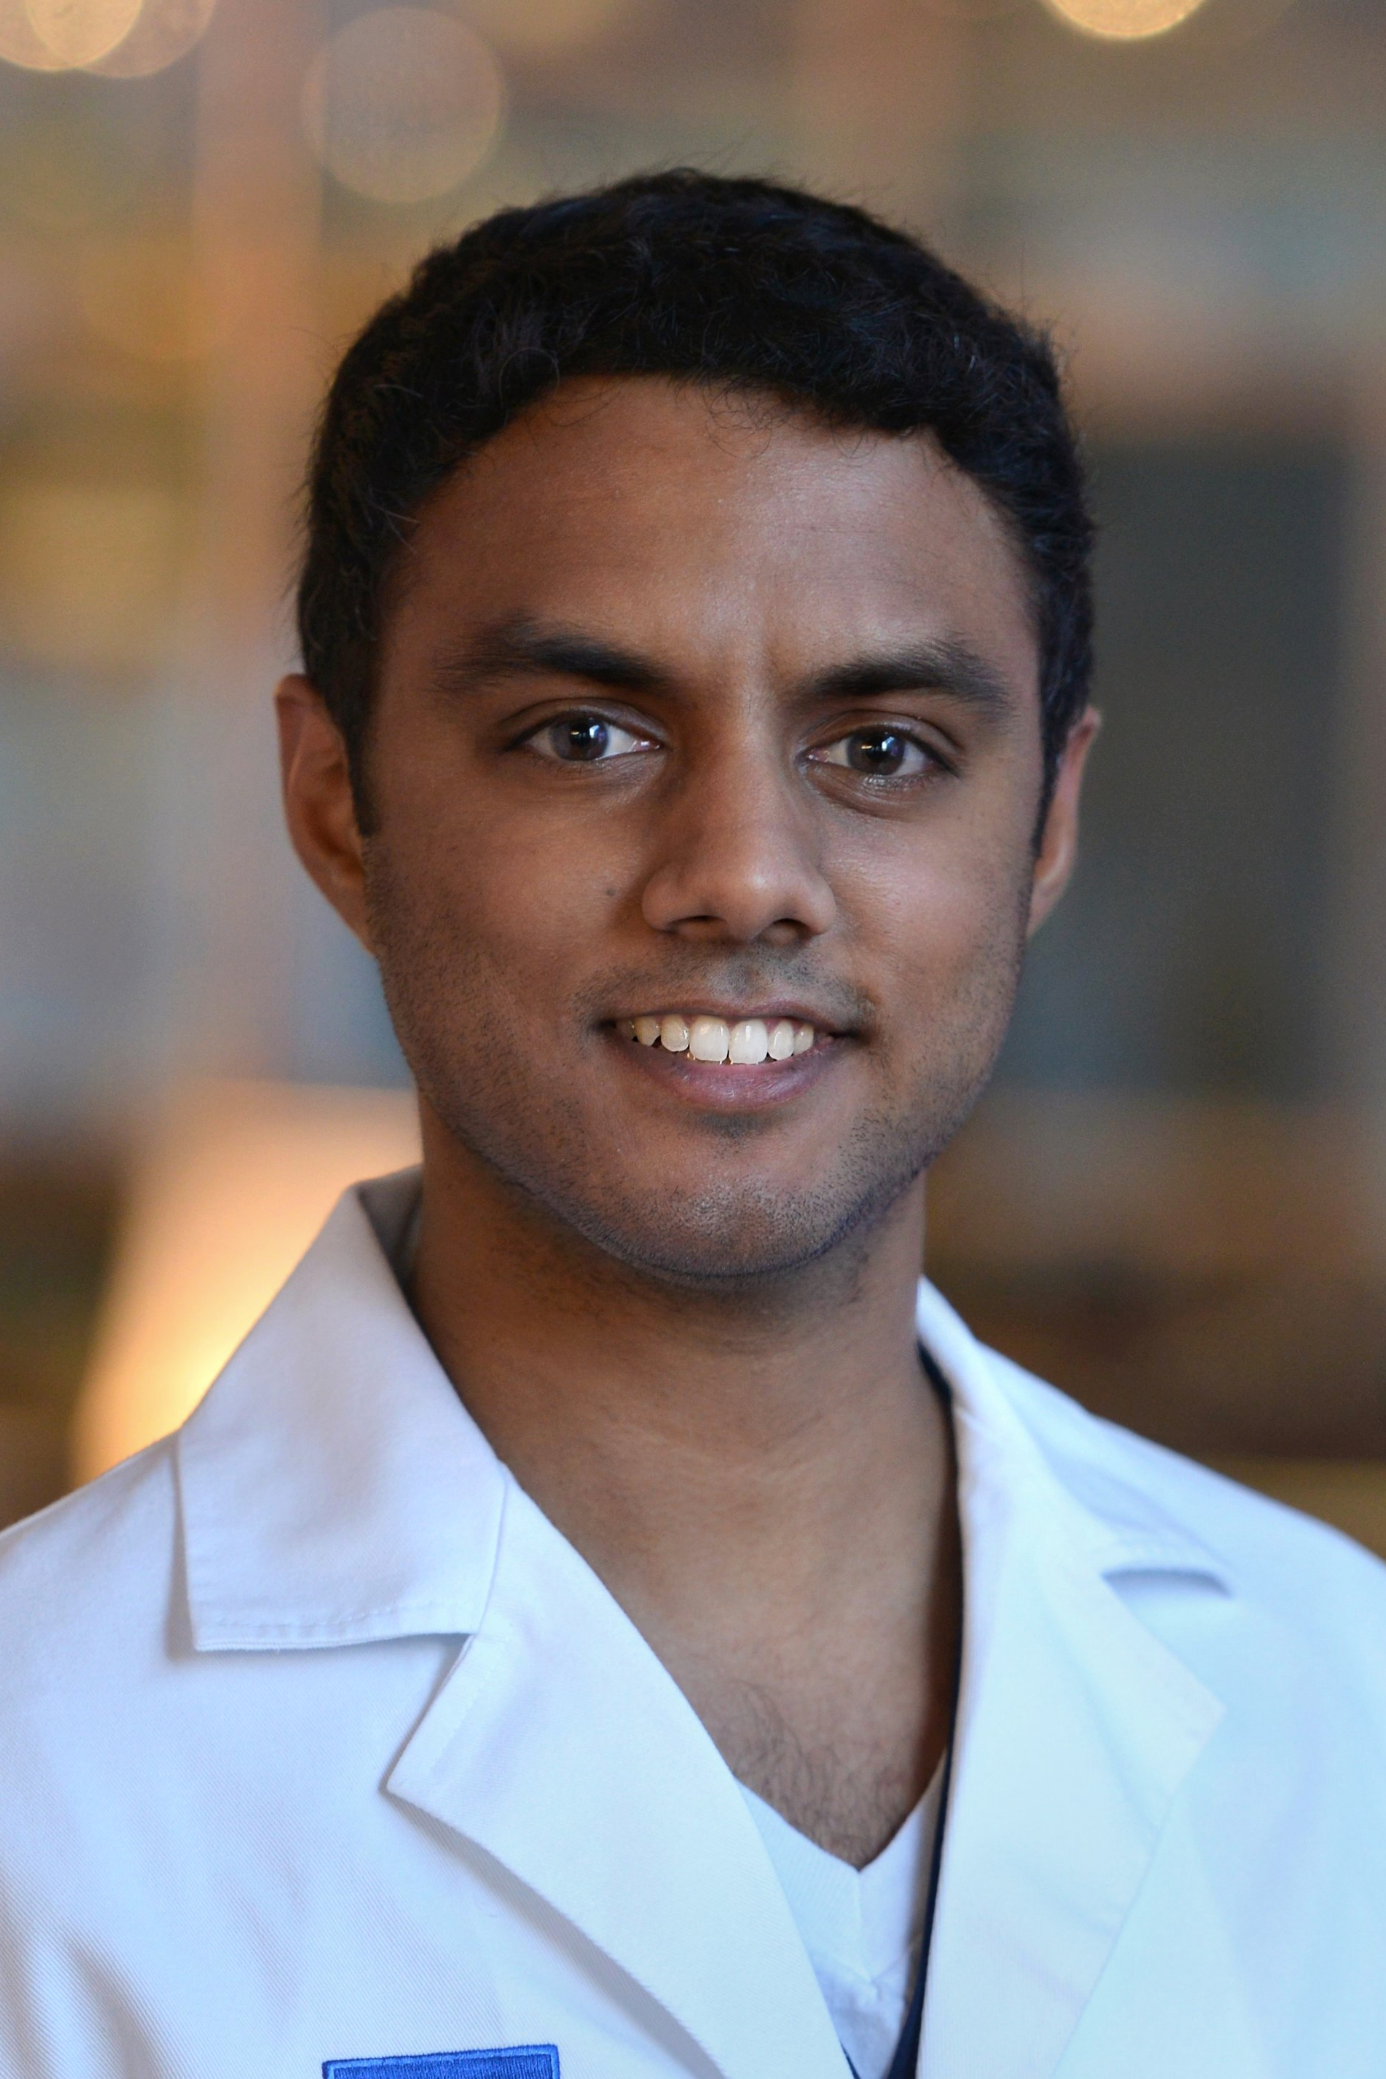 Neel Shah, MD - Medical School: Baylor College of MedicineResidency: Baylor College of MedicineYear Joined: 2017Special Interests: Visual arts, Travel, Gaming